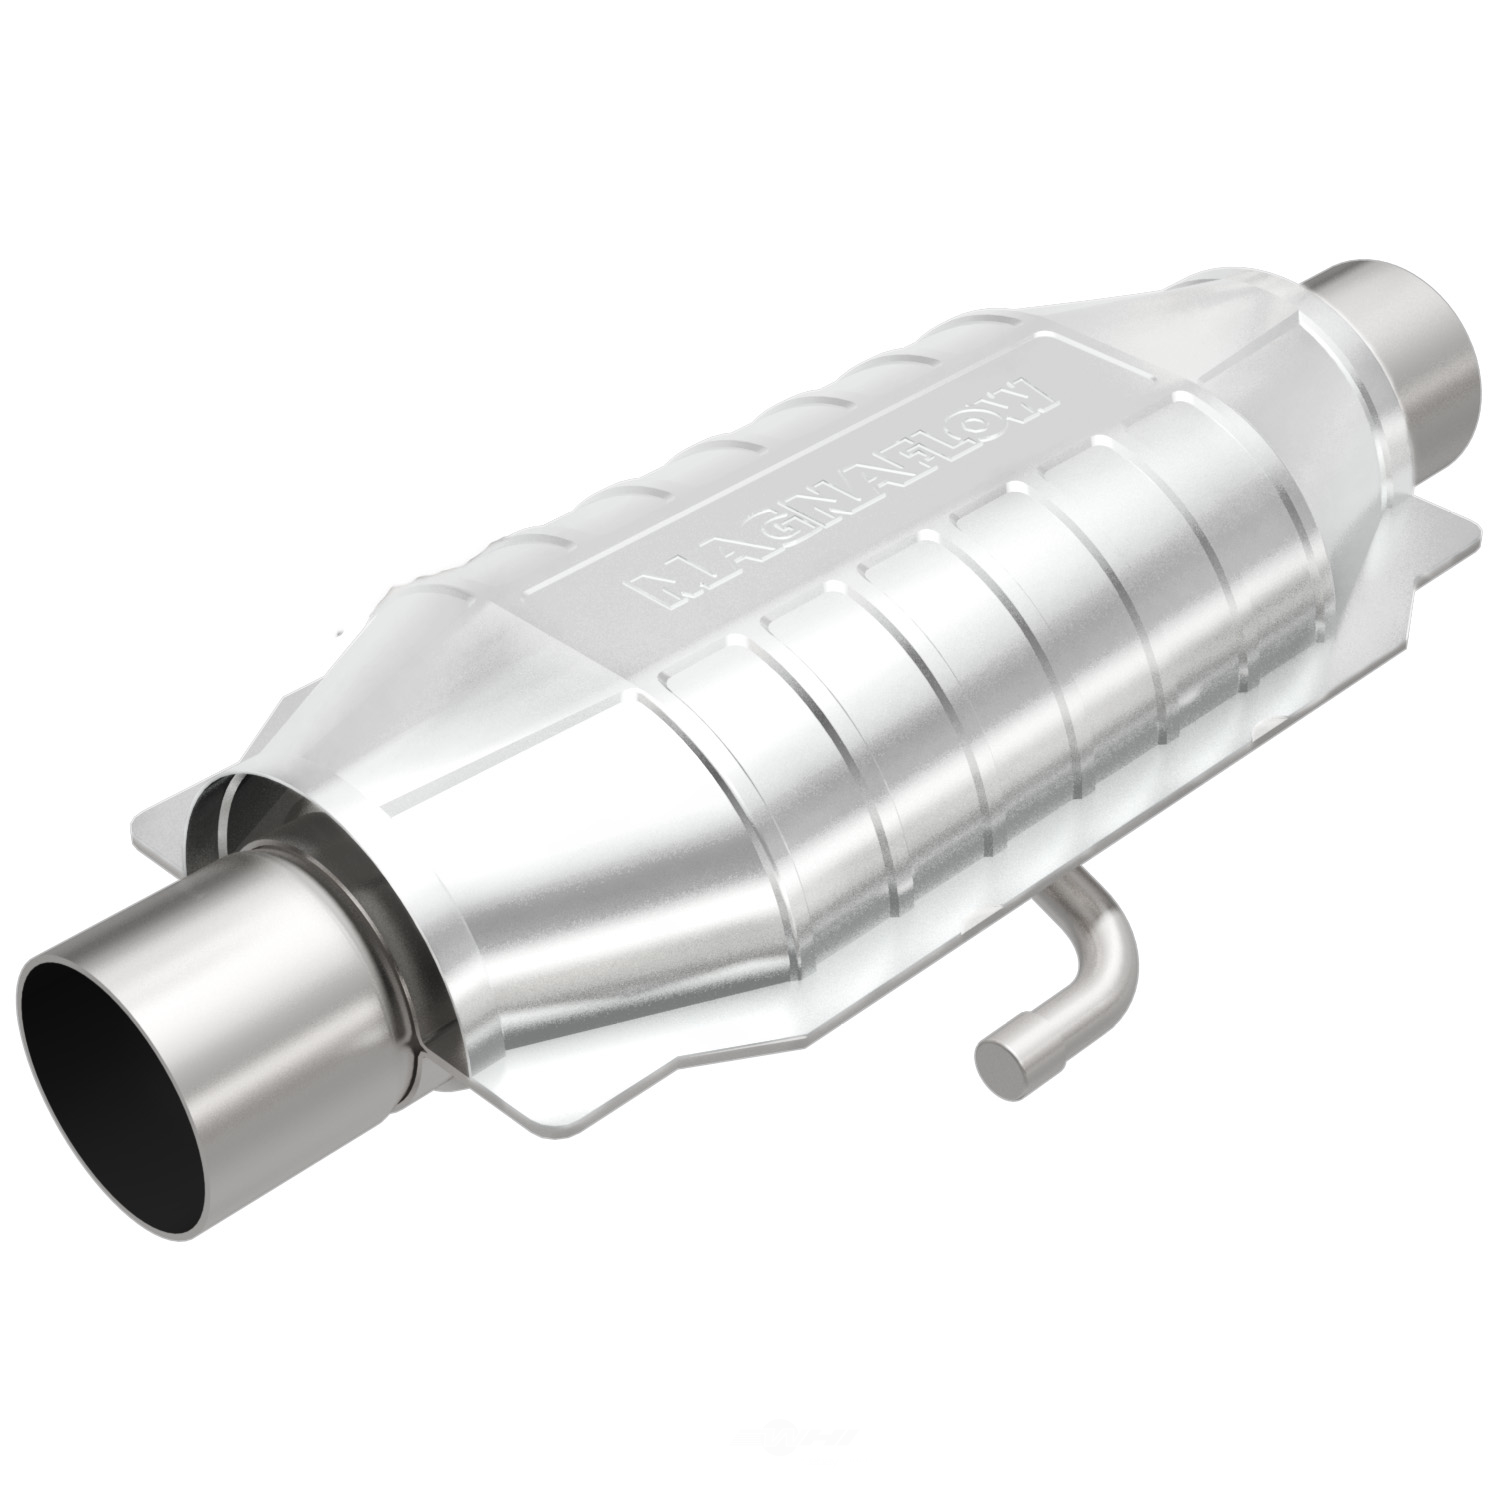 MAGNAFLOW CARB COMPLIANT CONVERTER - 2.25in. Universal California Pre-OBDII Catalytic Converter (Rear) - MFC 334015